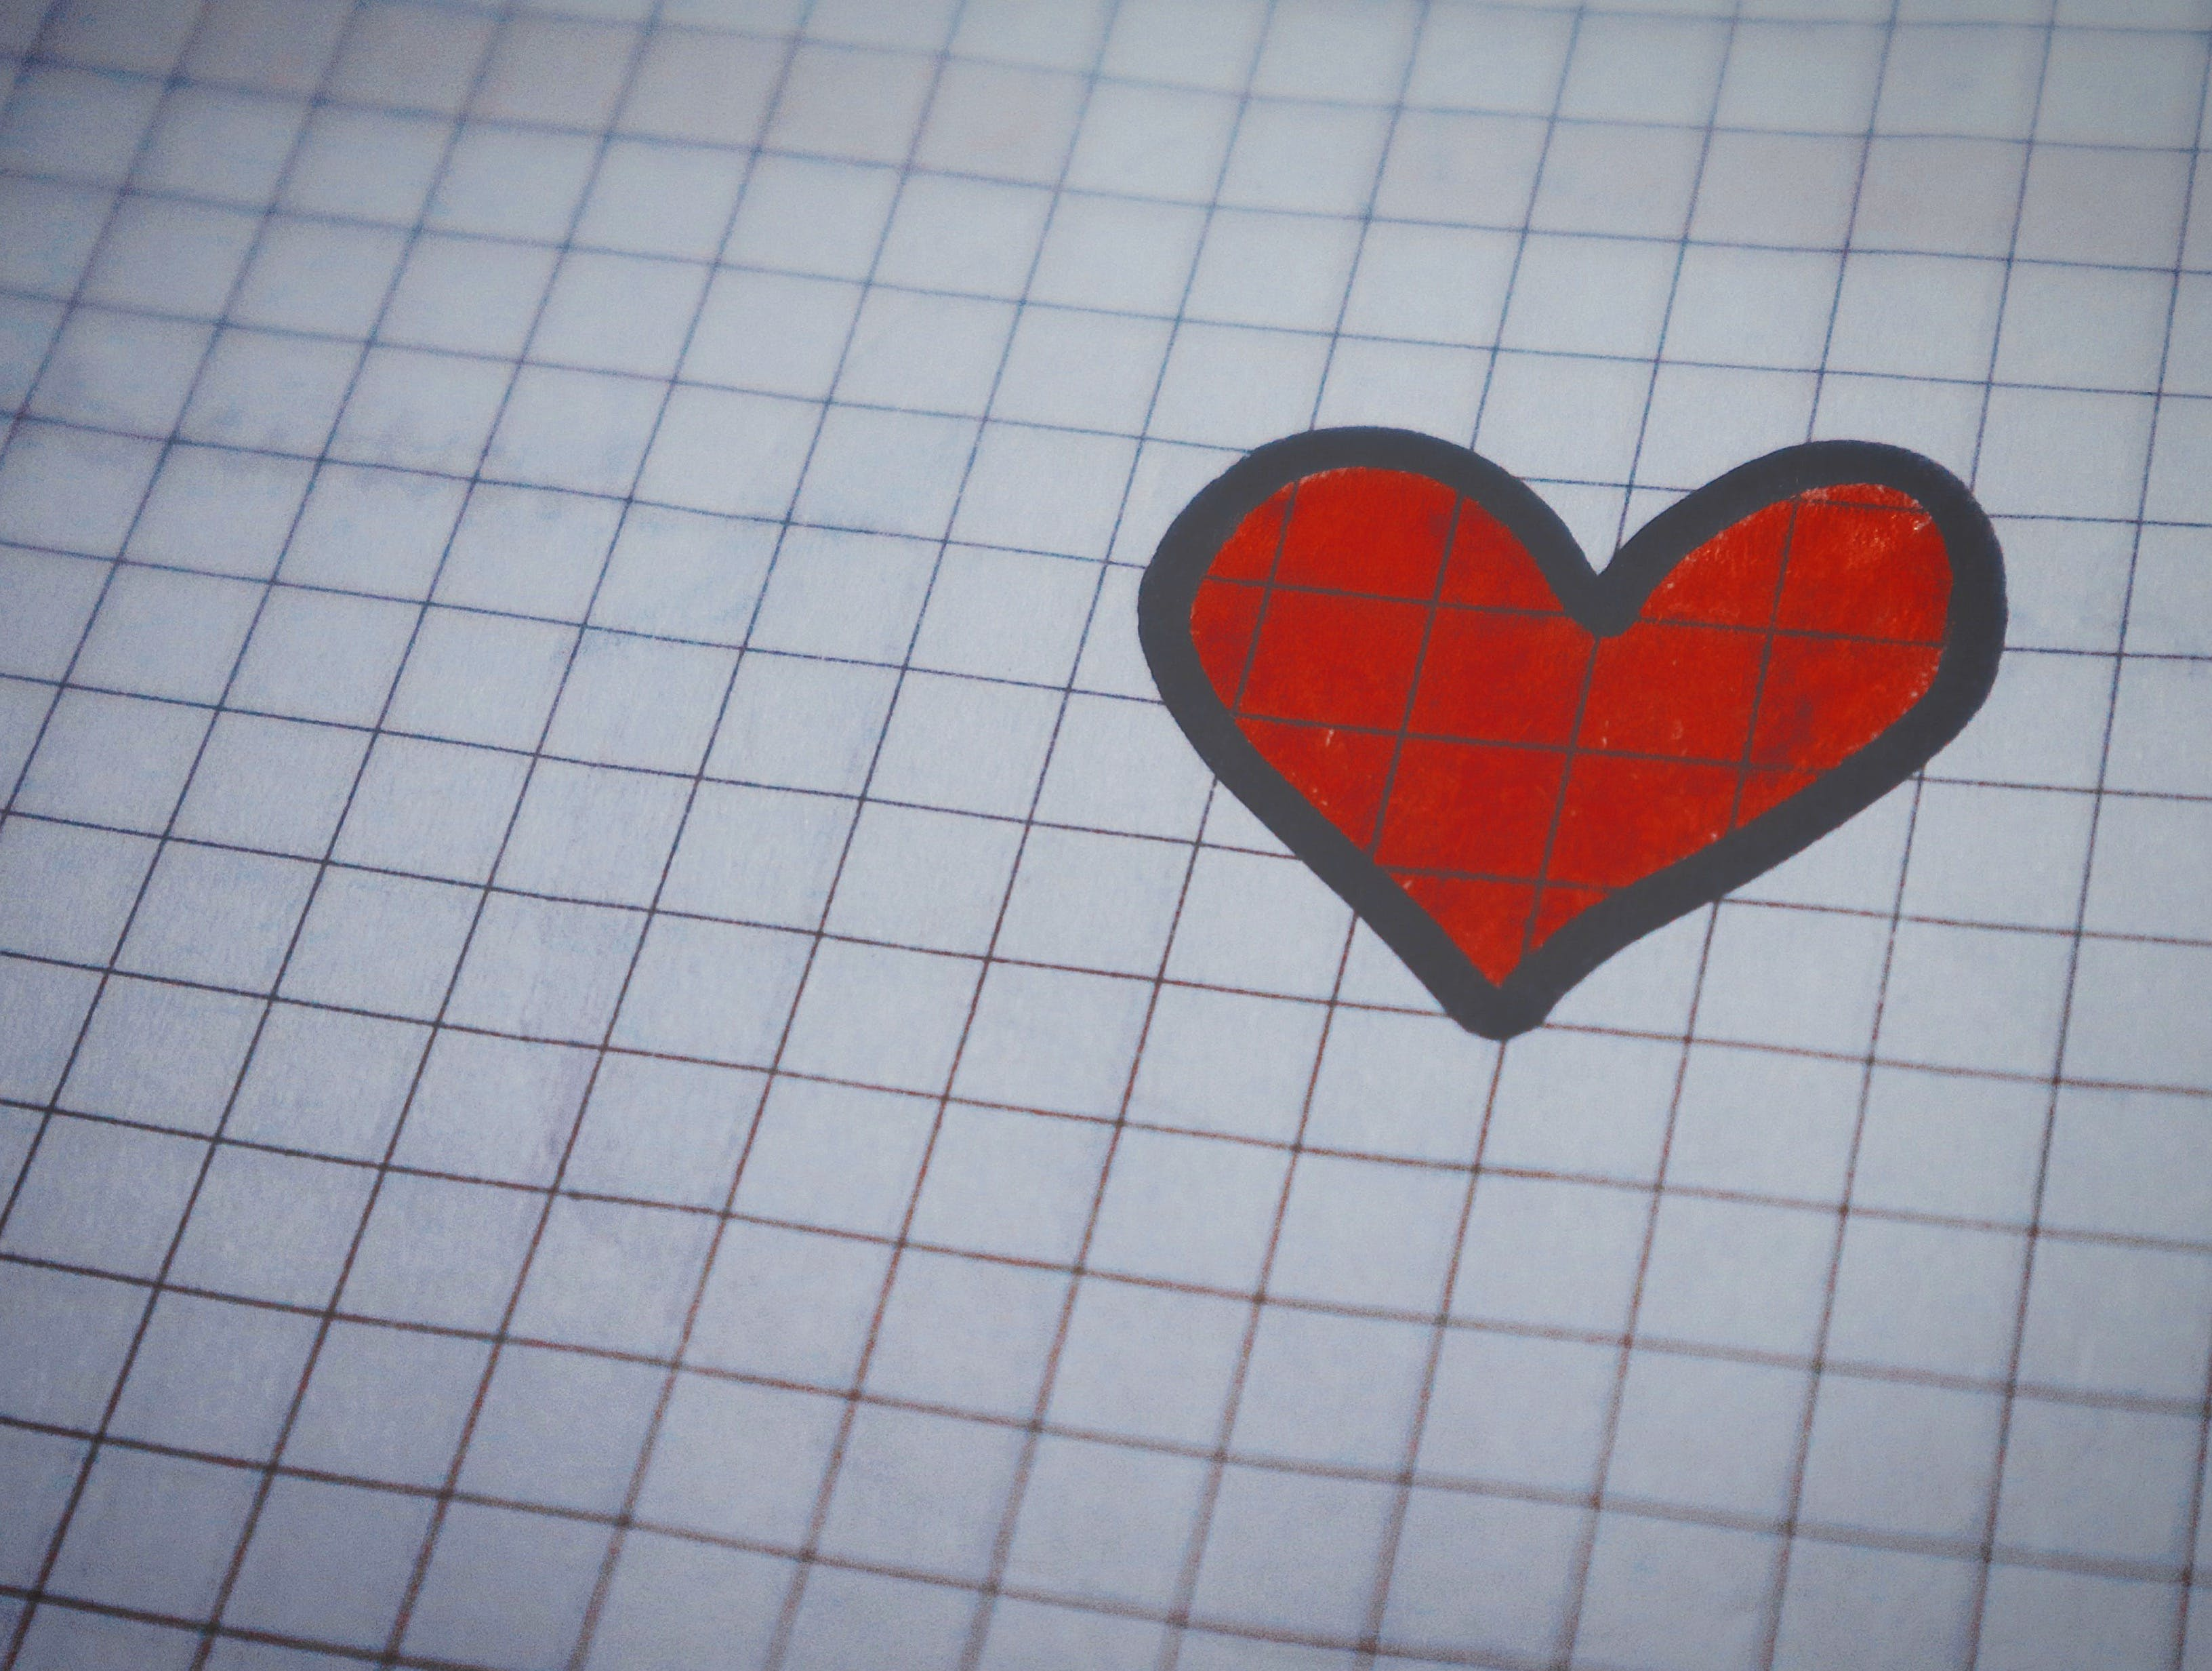 White Page of Graphing Paper With Red Heart Drawing